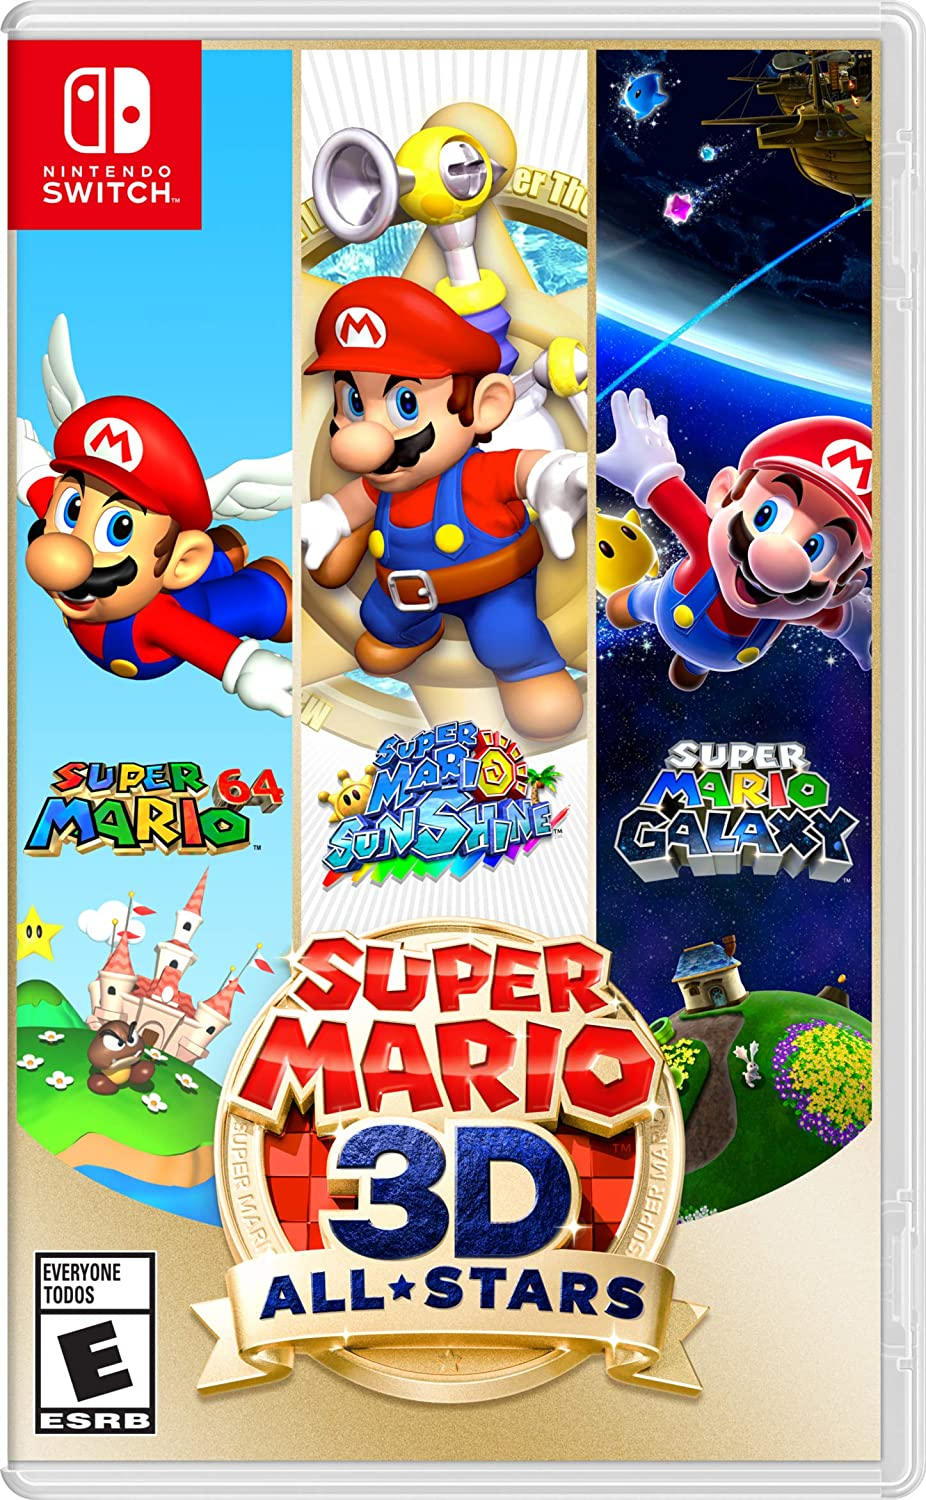 Nintendo's Super Mario 35th Anniversary celebration